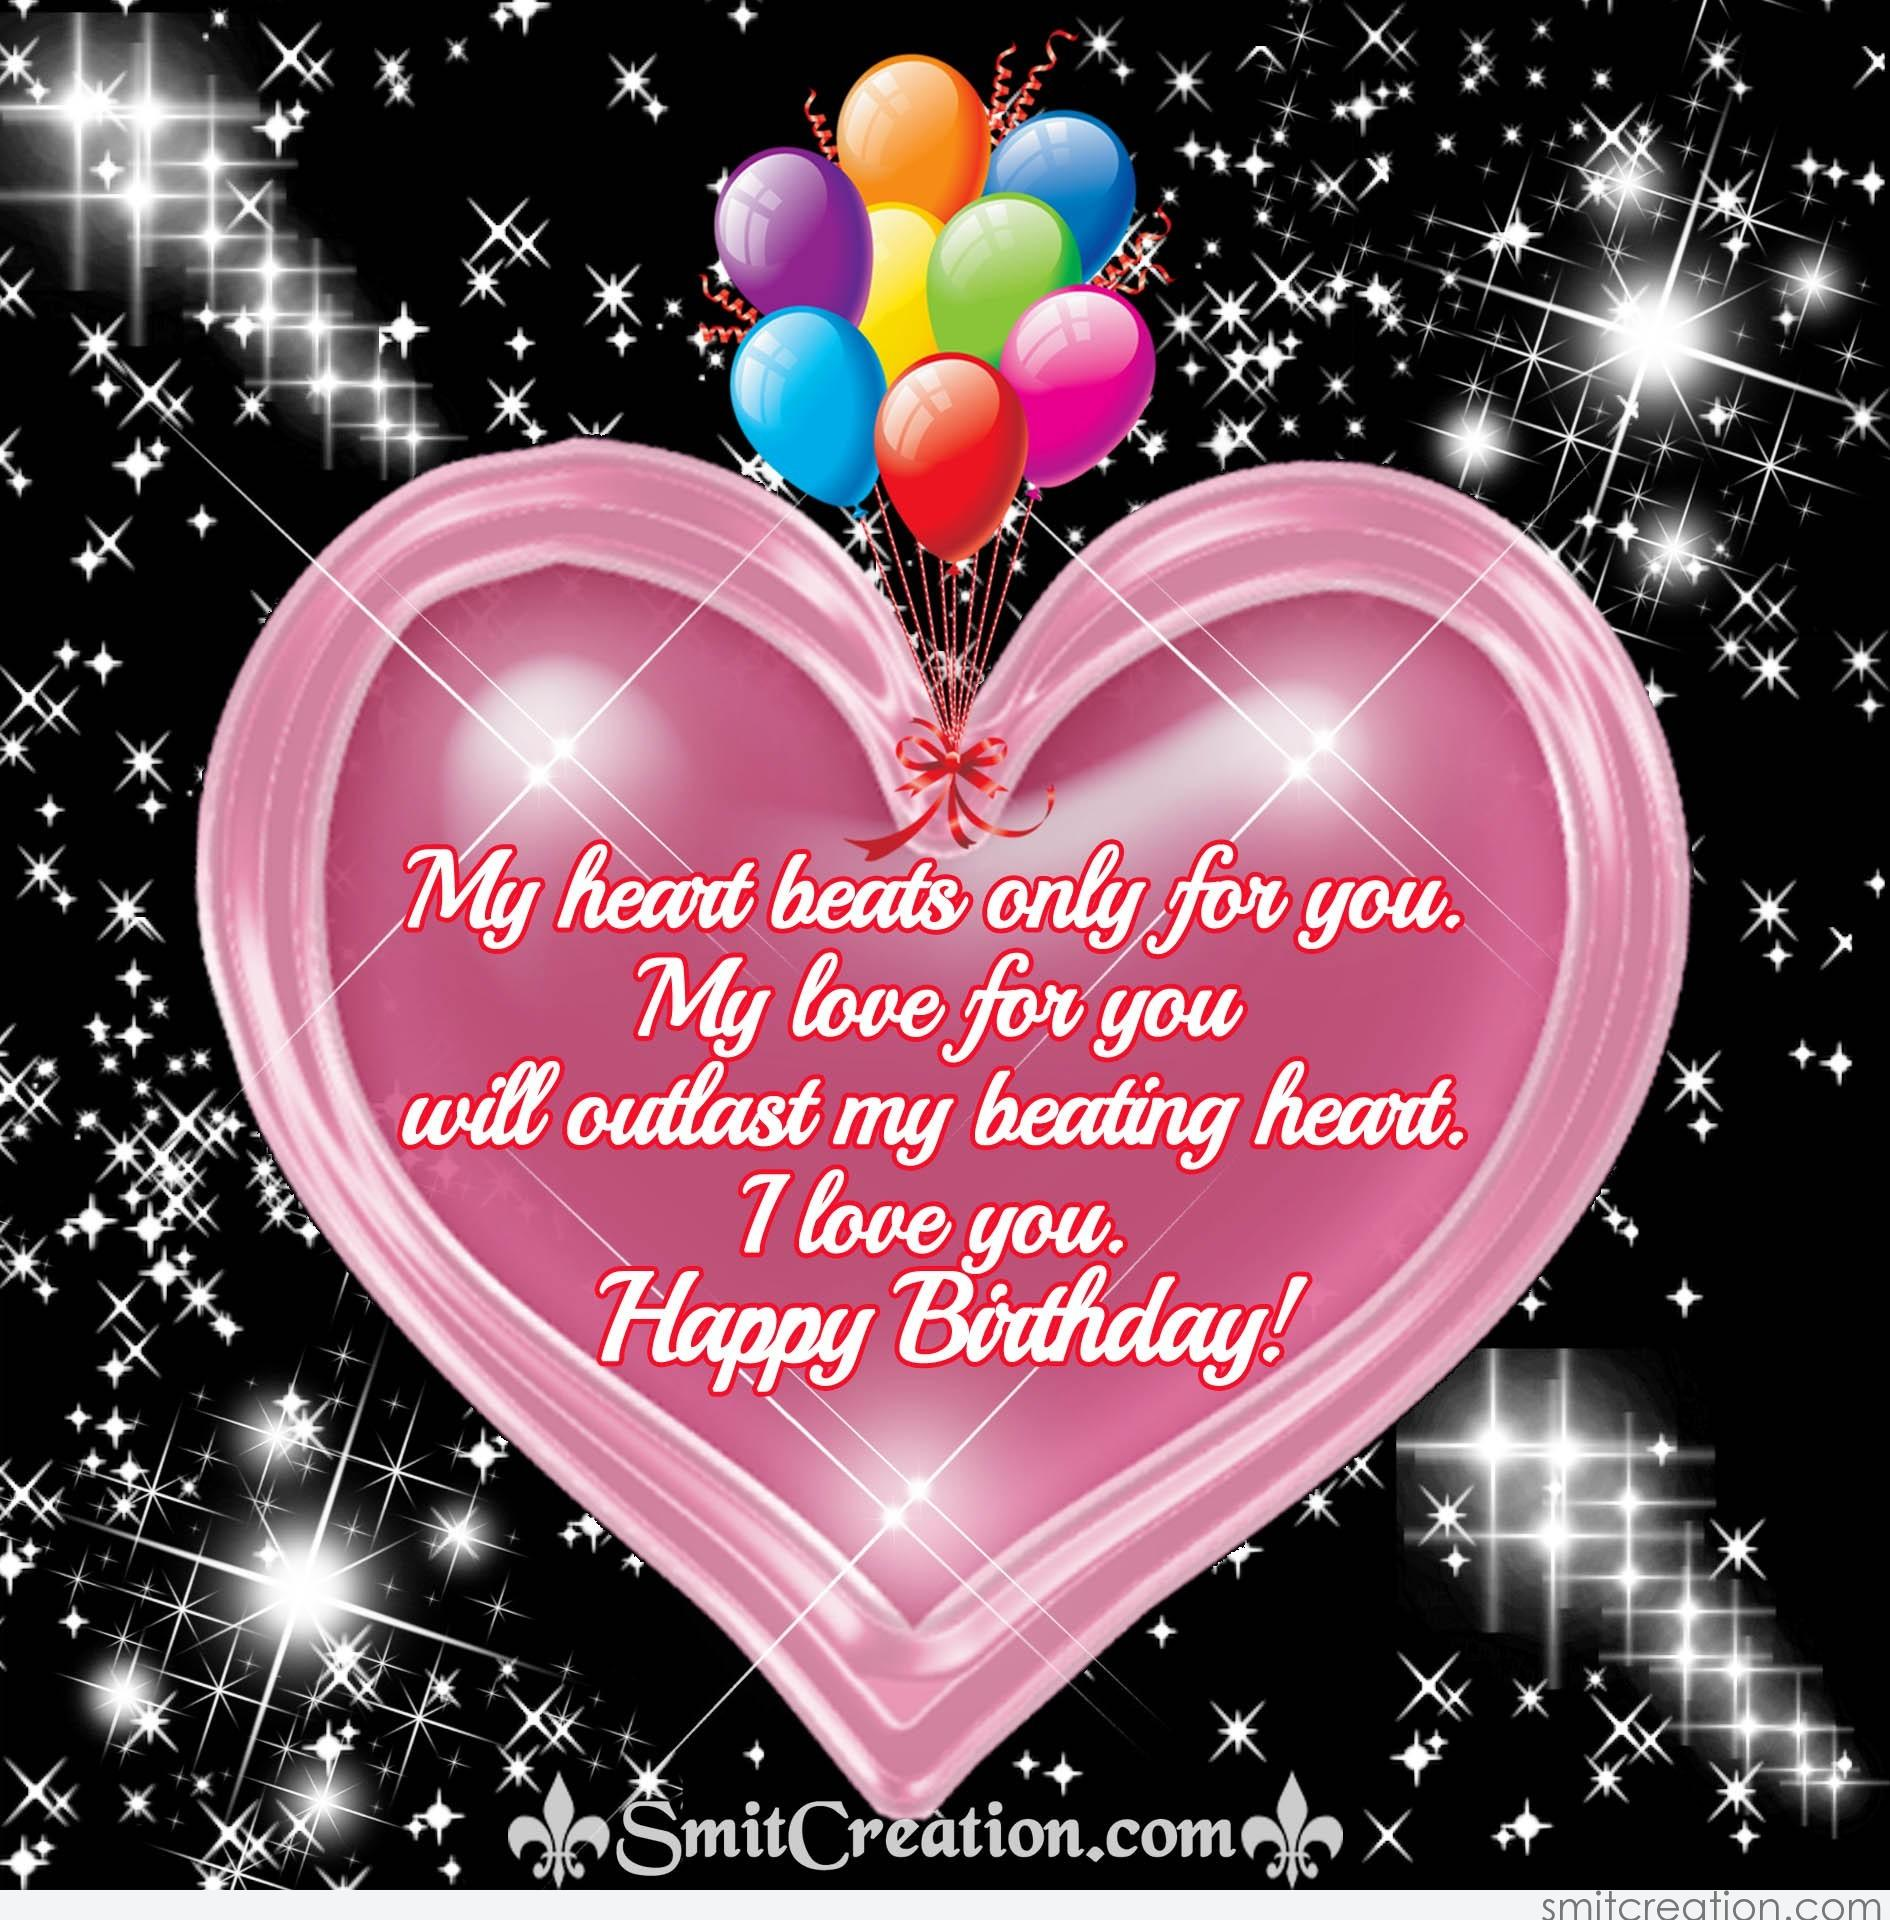 Birthday Wishes for Boyfriend Pictures and Graphics ...